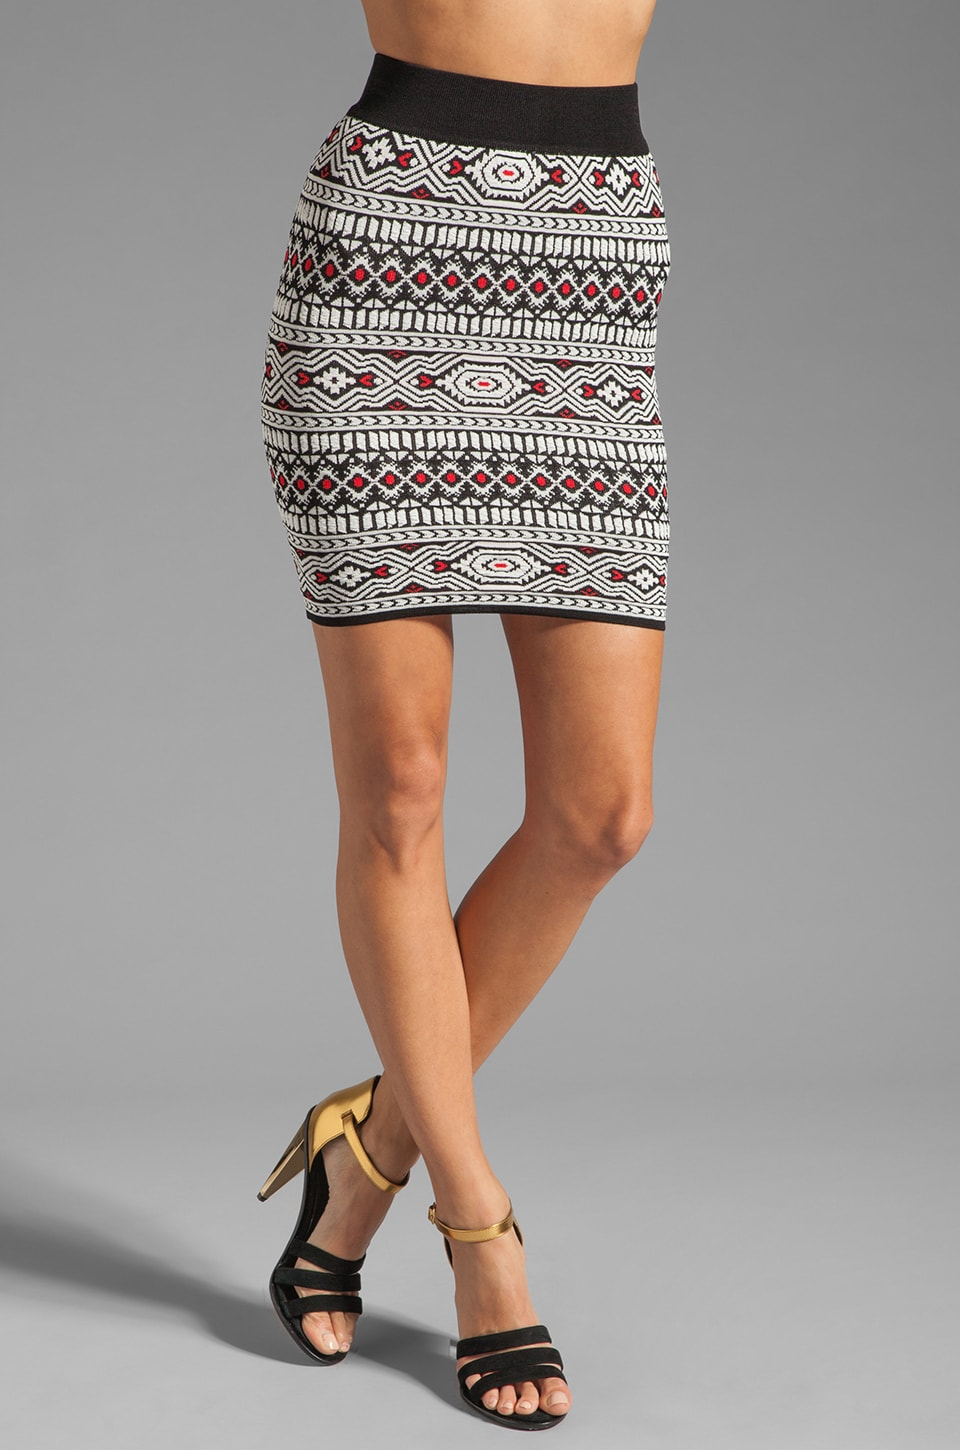 Torn by Ronny Kobo Celine Tribal Jacquard Skirt in Black